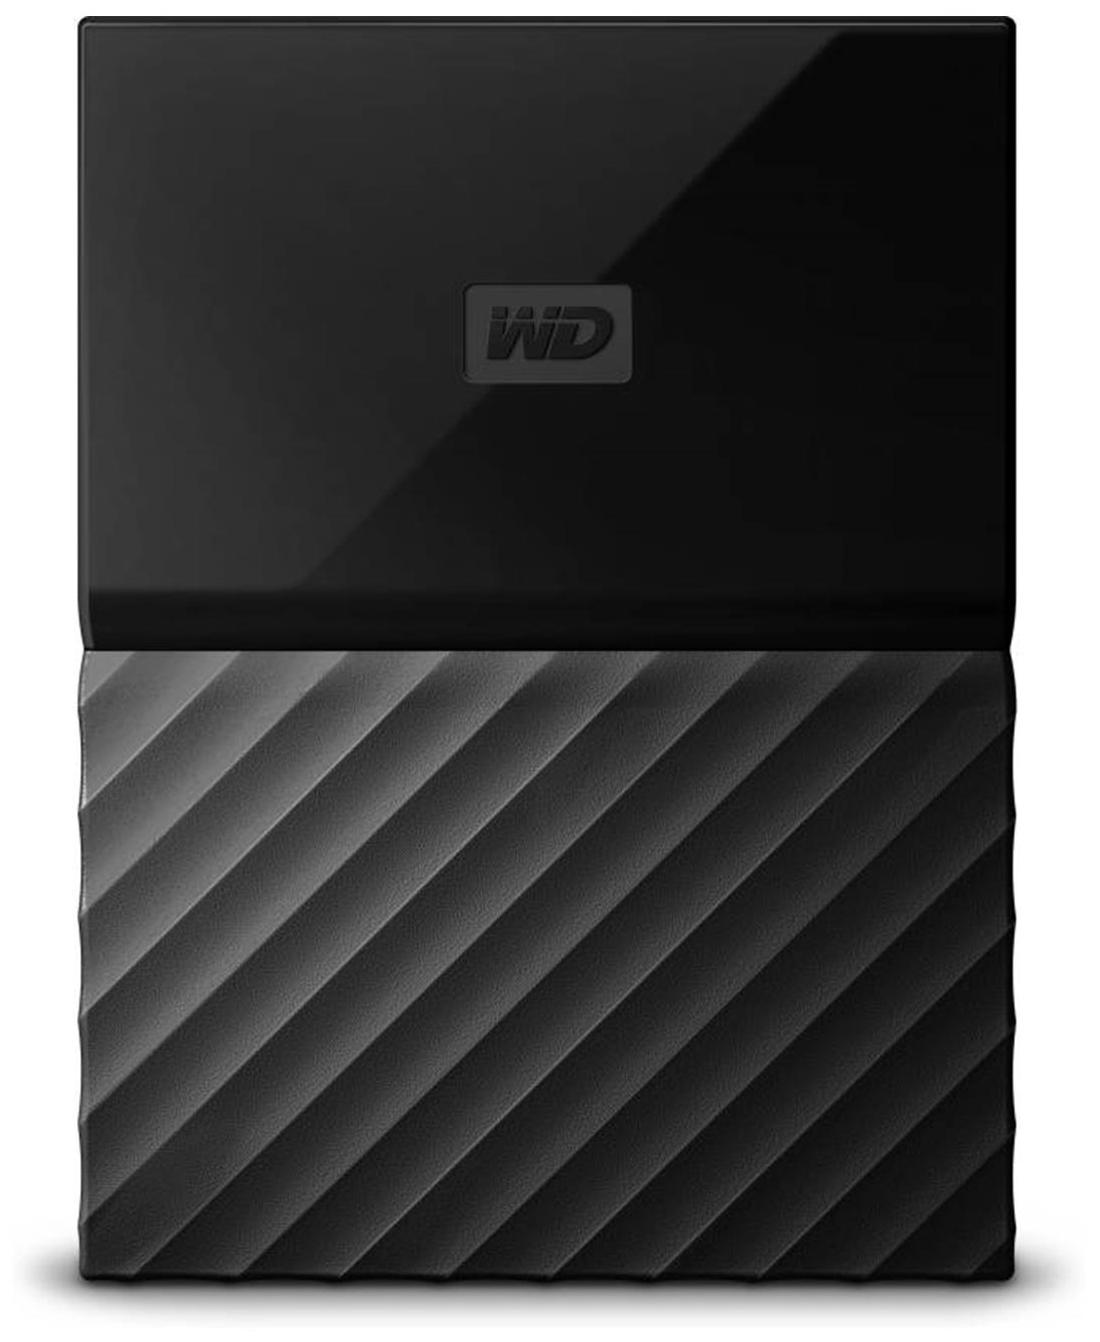 WD My Passport WDBS4B0020BBK-WESN 2 TB Portable External Hard Drive (Black)